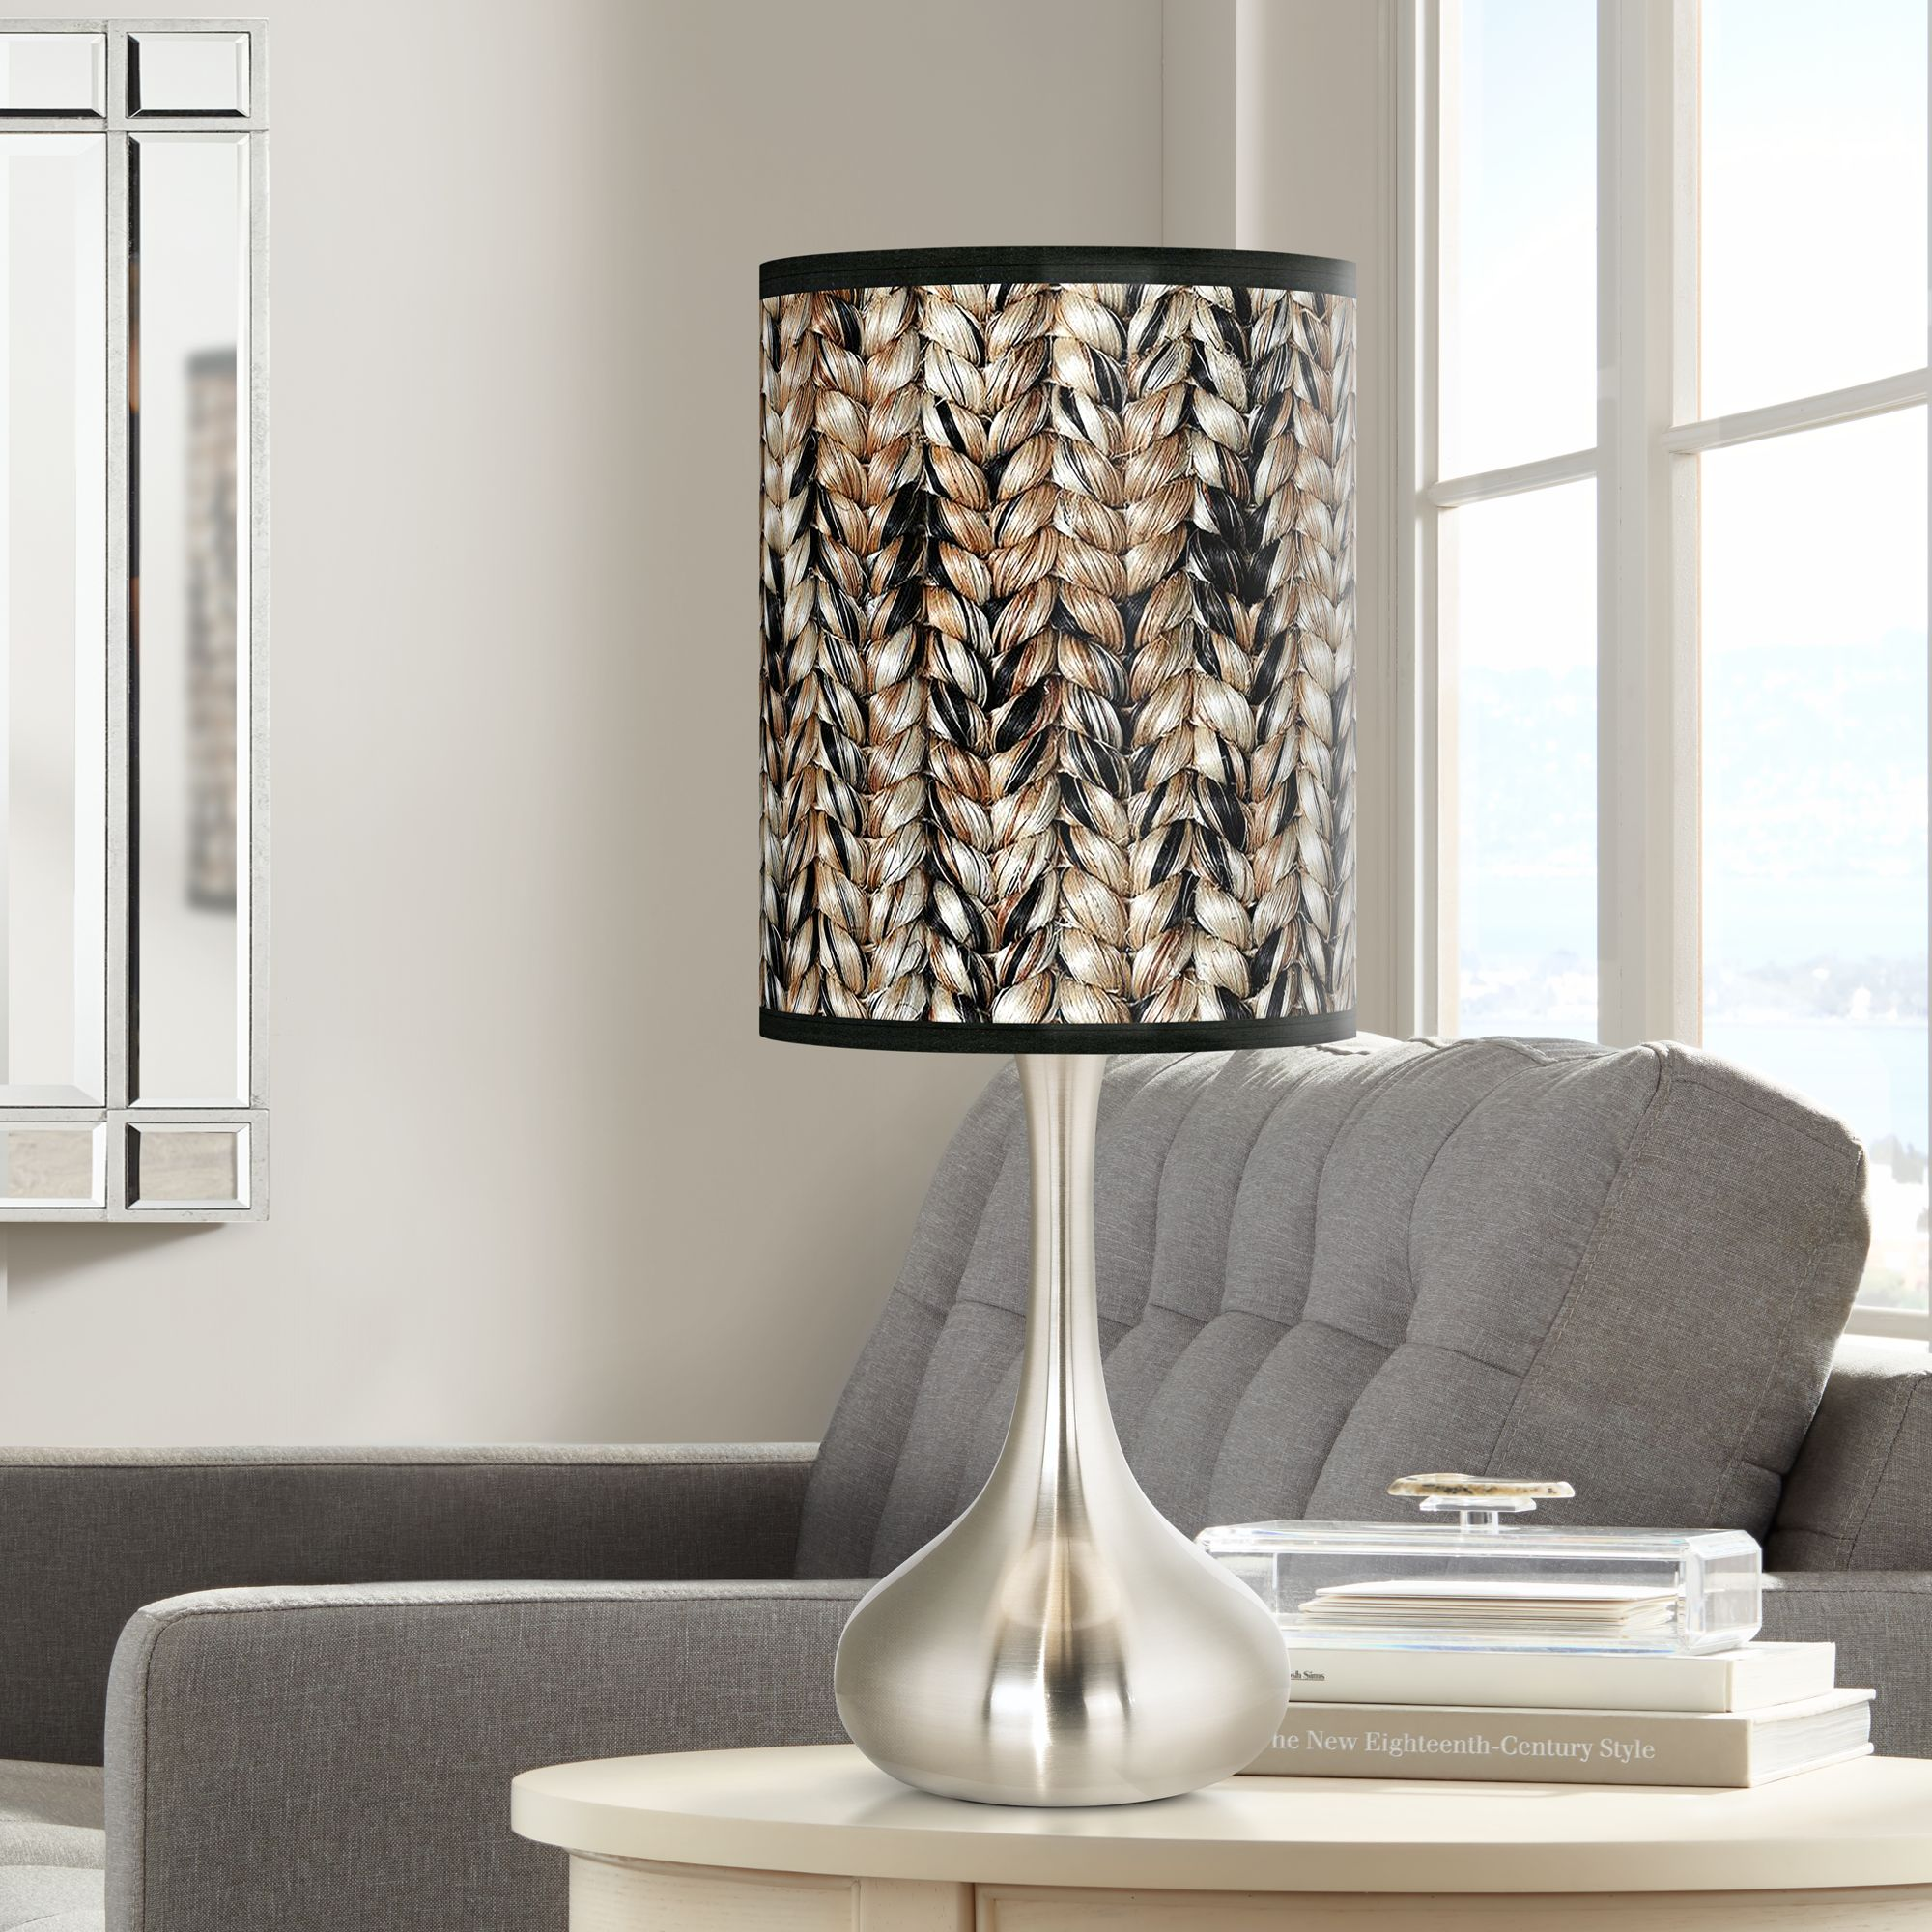 Giclee Glow Braided Jute Giclee Droplet Table Lamp